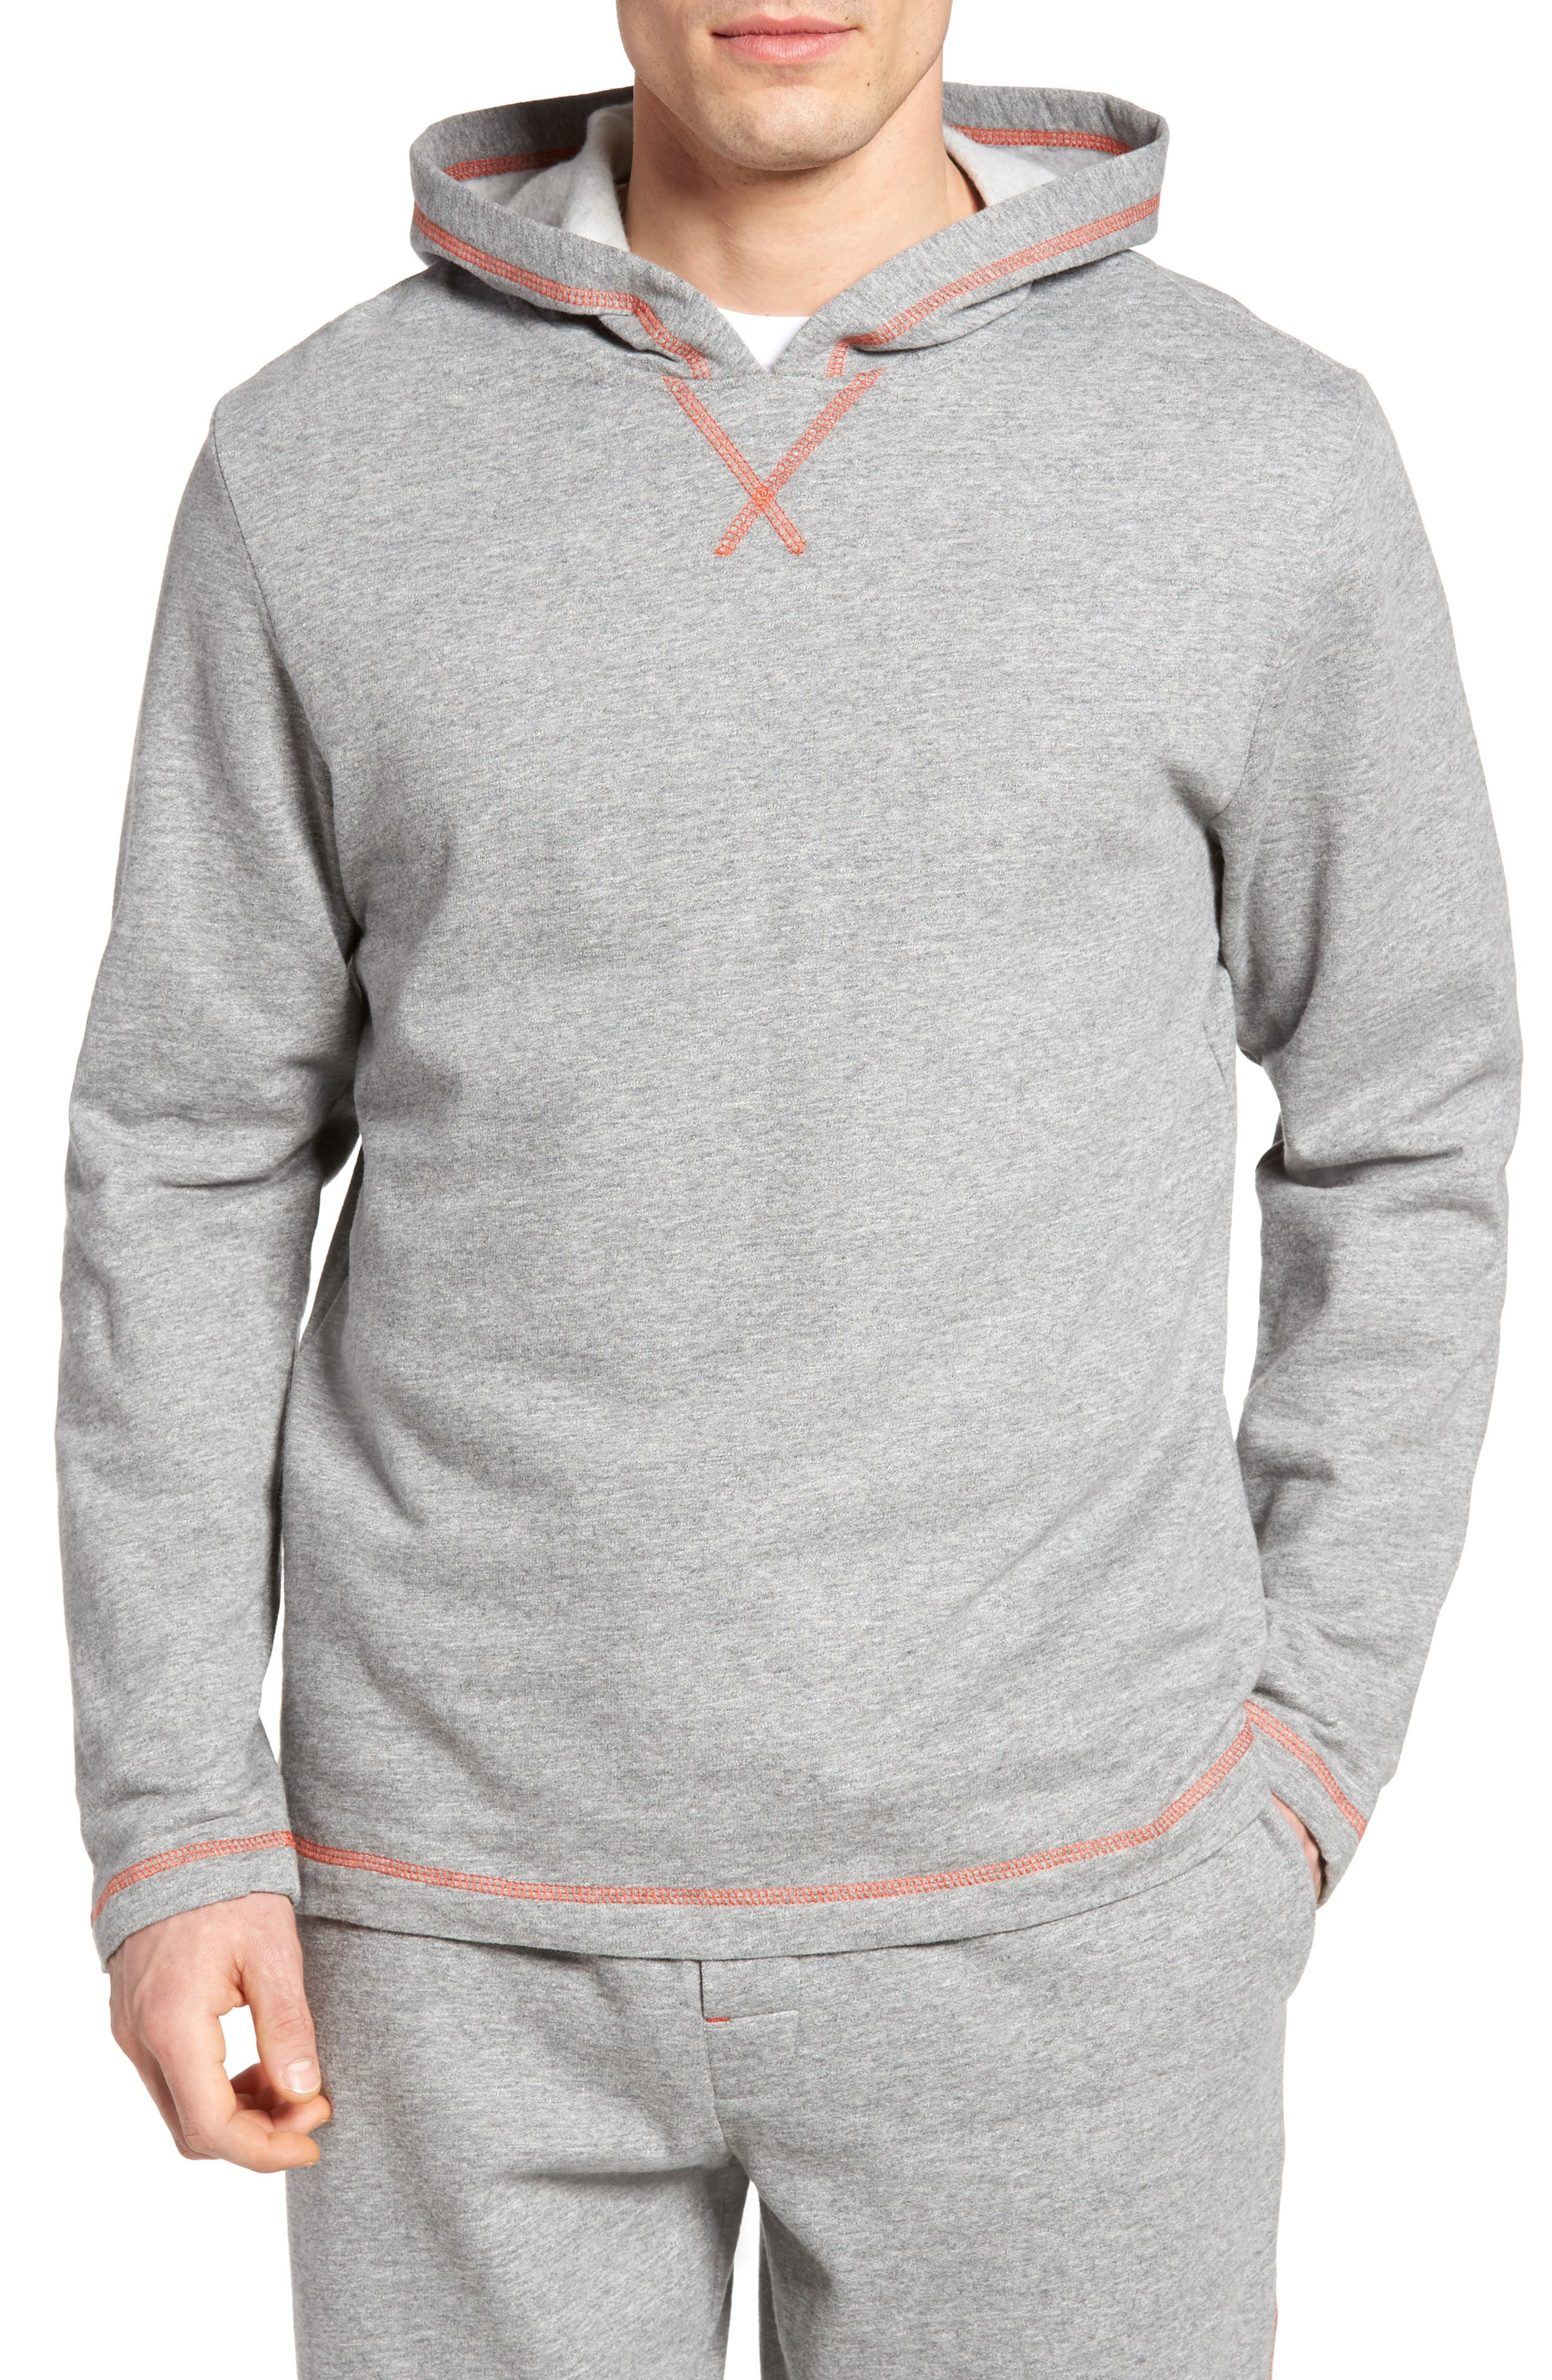 Bhooka Cotton Blend Hoodie,                         Main,                         color, Charcoal Heather